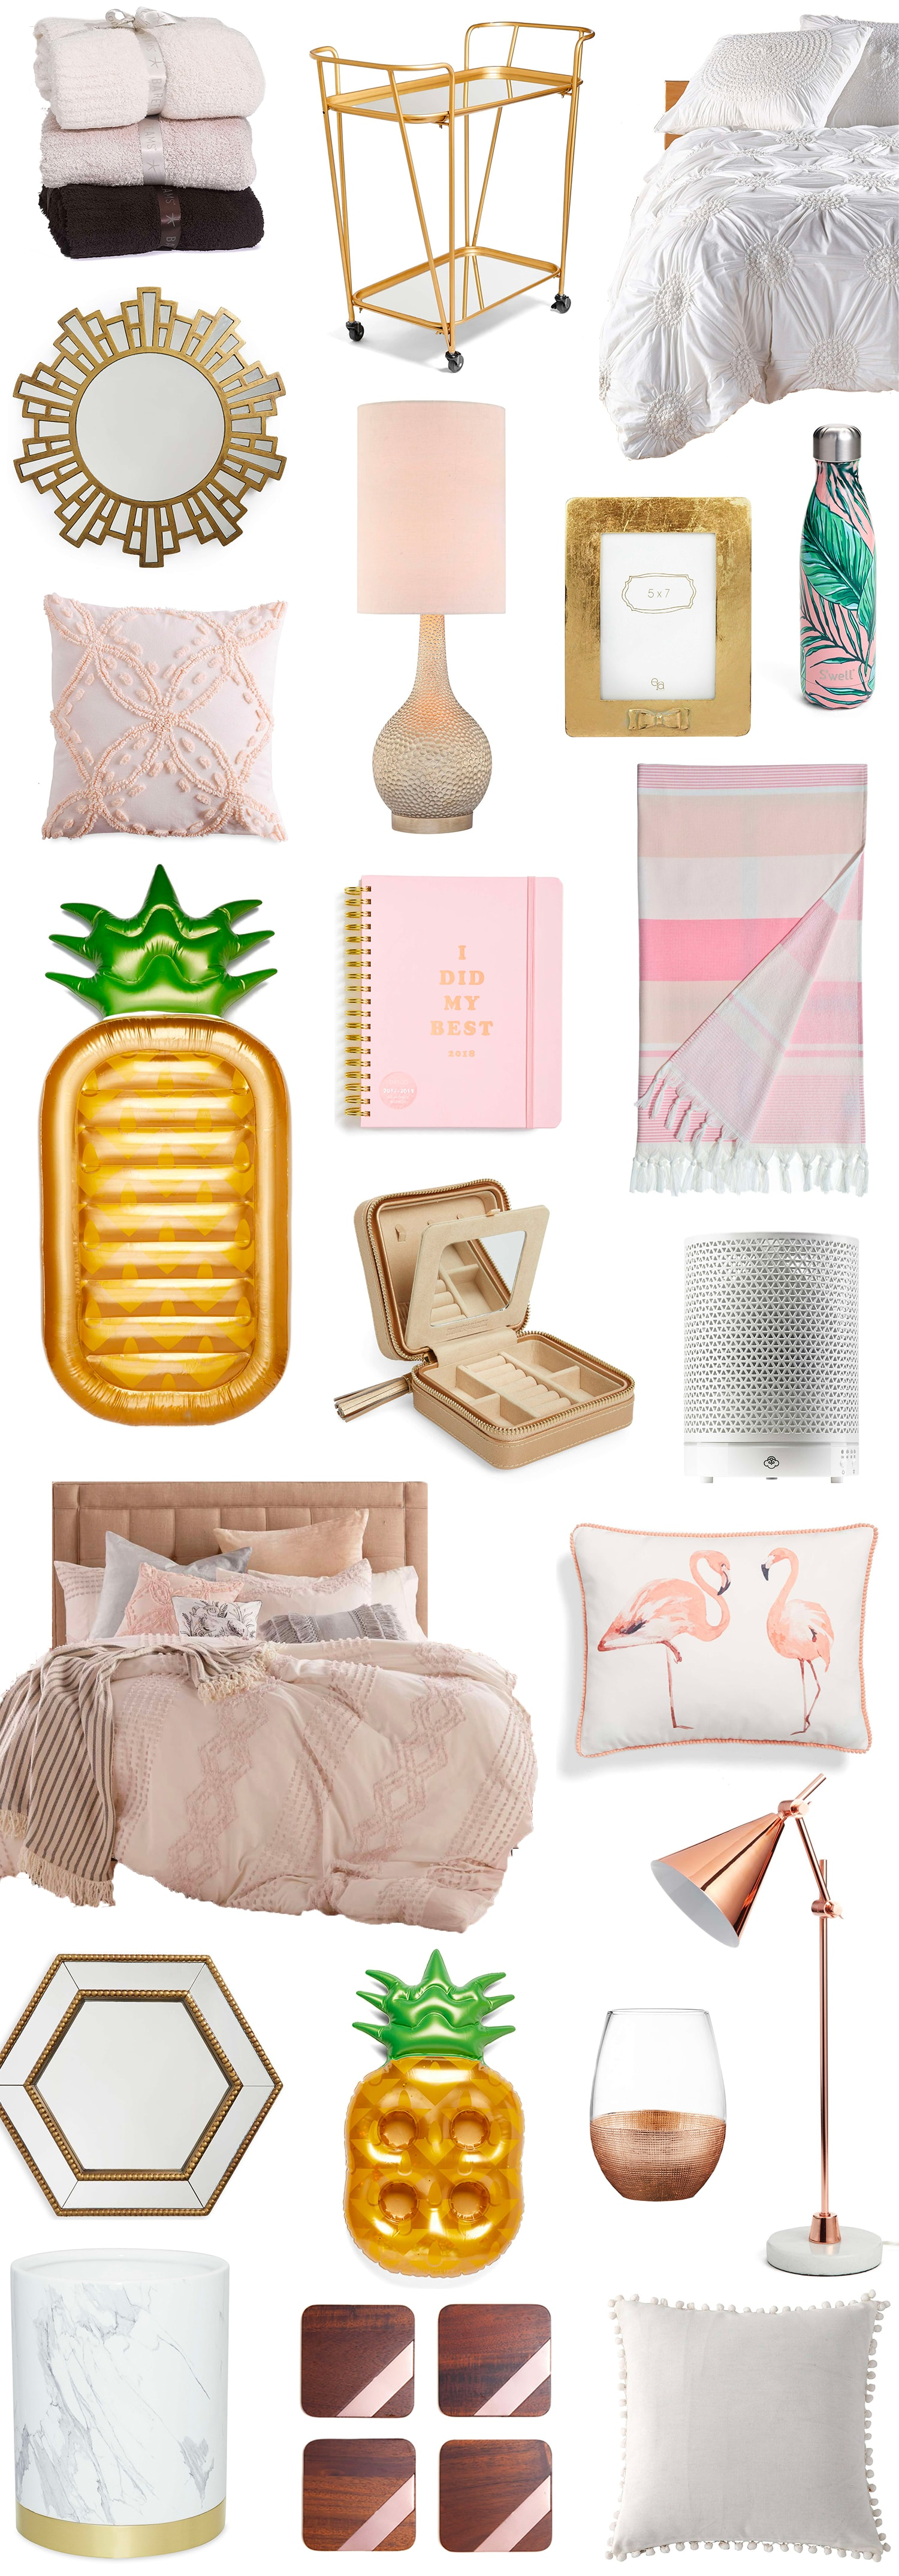 Best Home Decor Deals from The Nordstrom Anniversary Sale